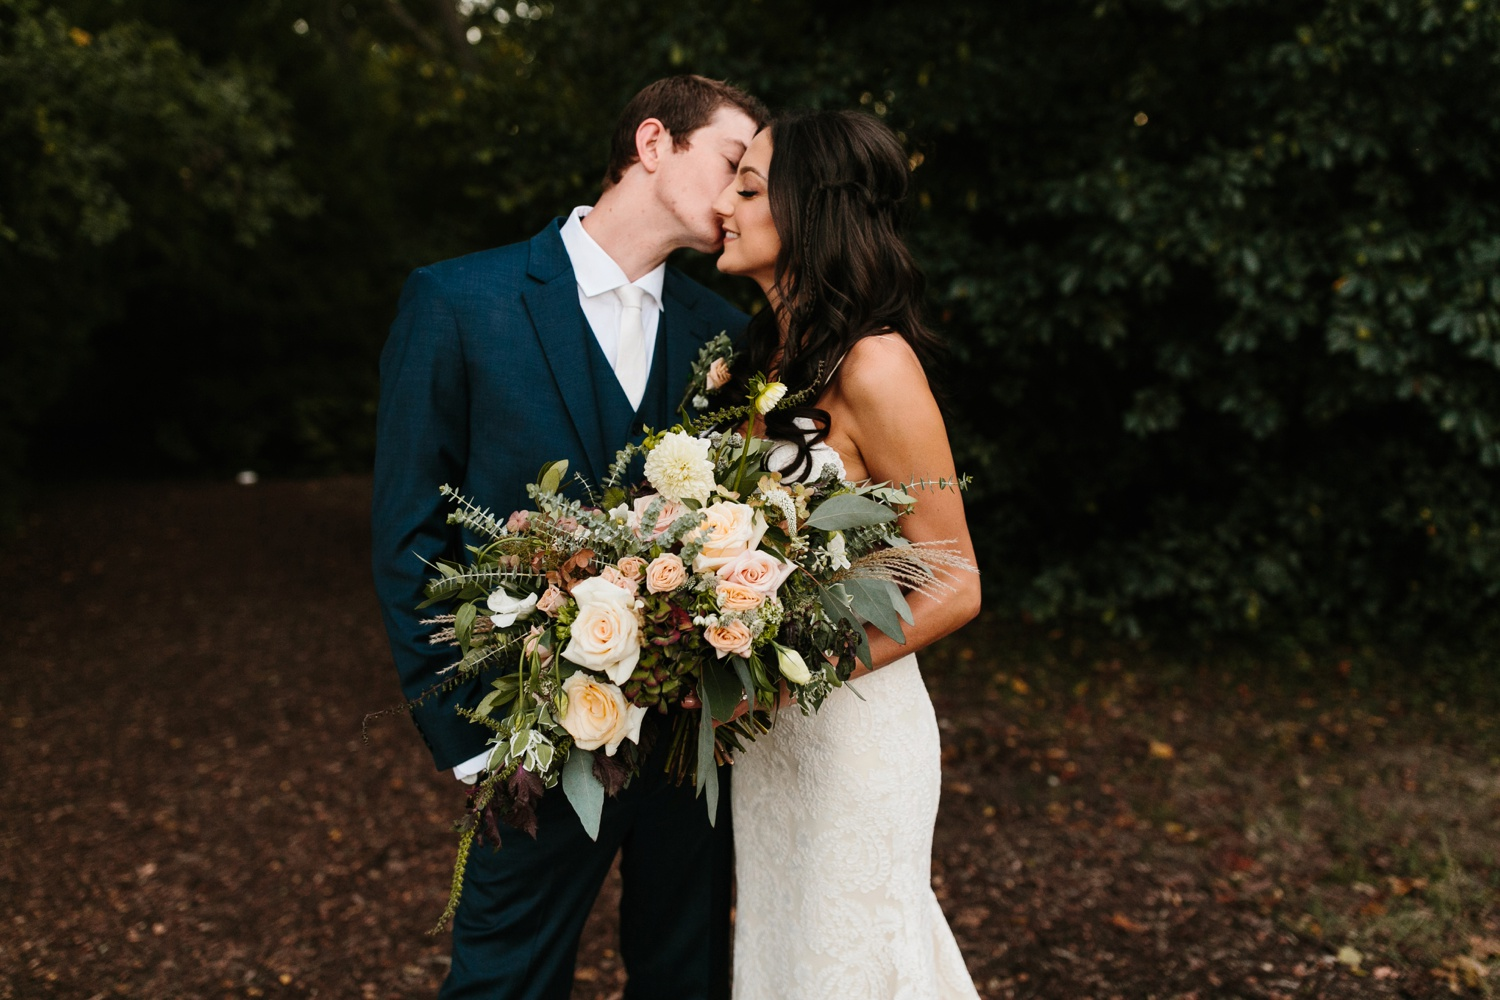 Erica + Henry | a bohemian inspired wedding at Chandlers Gardens in Salina, TX by North Texas Wedding Photographer Rachel Meagan Photography 103